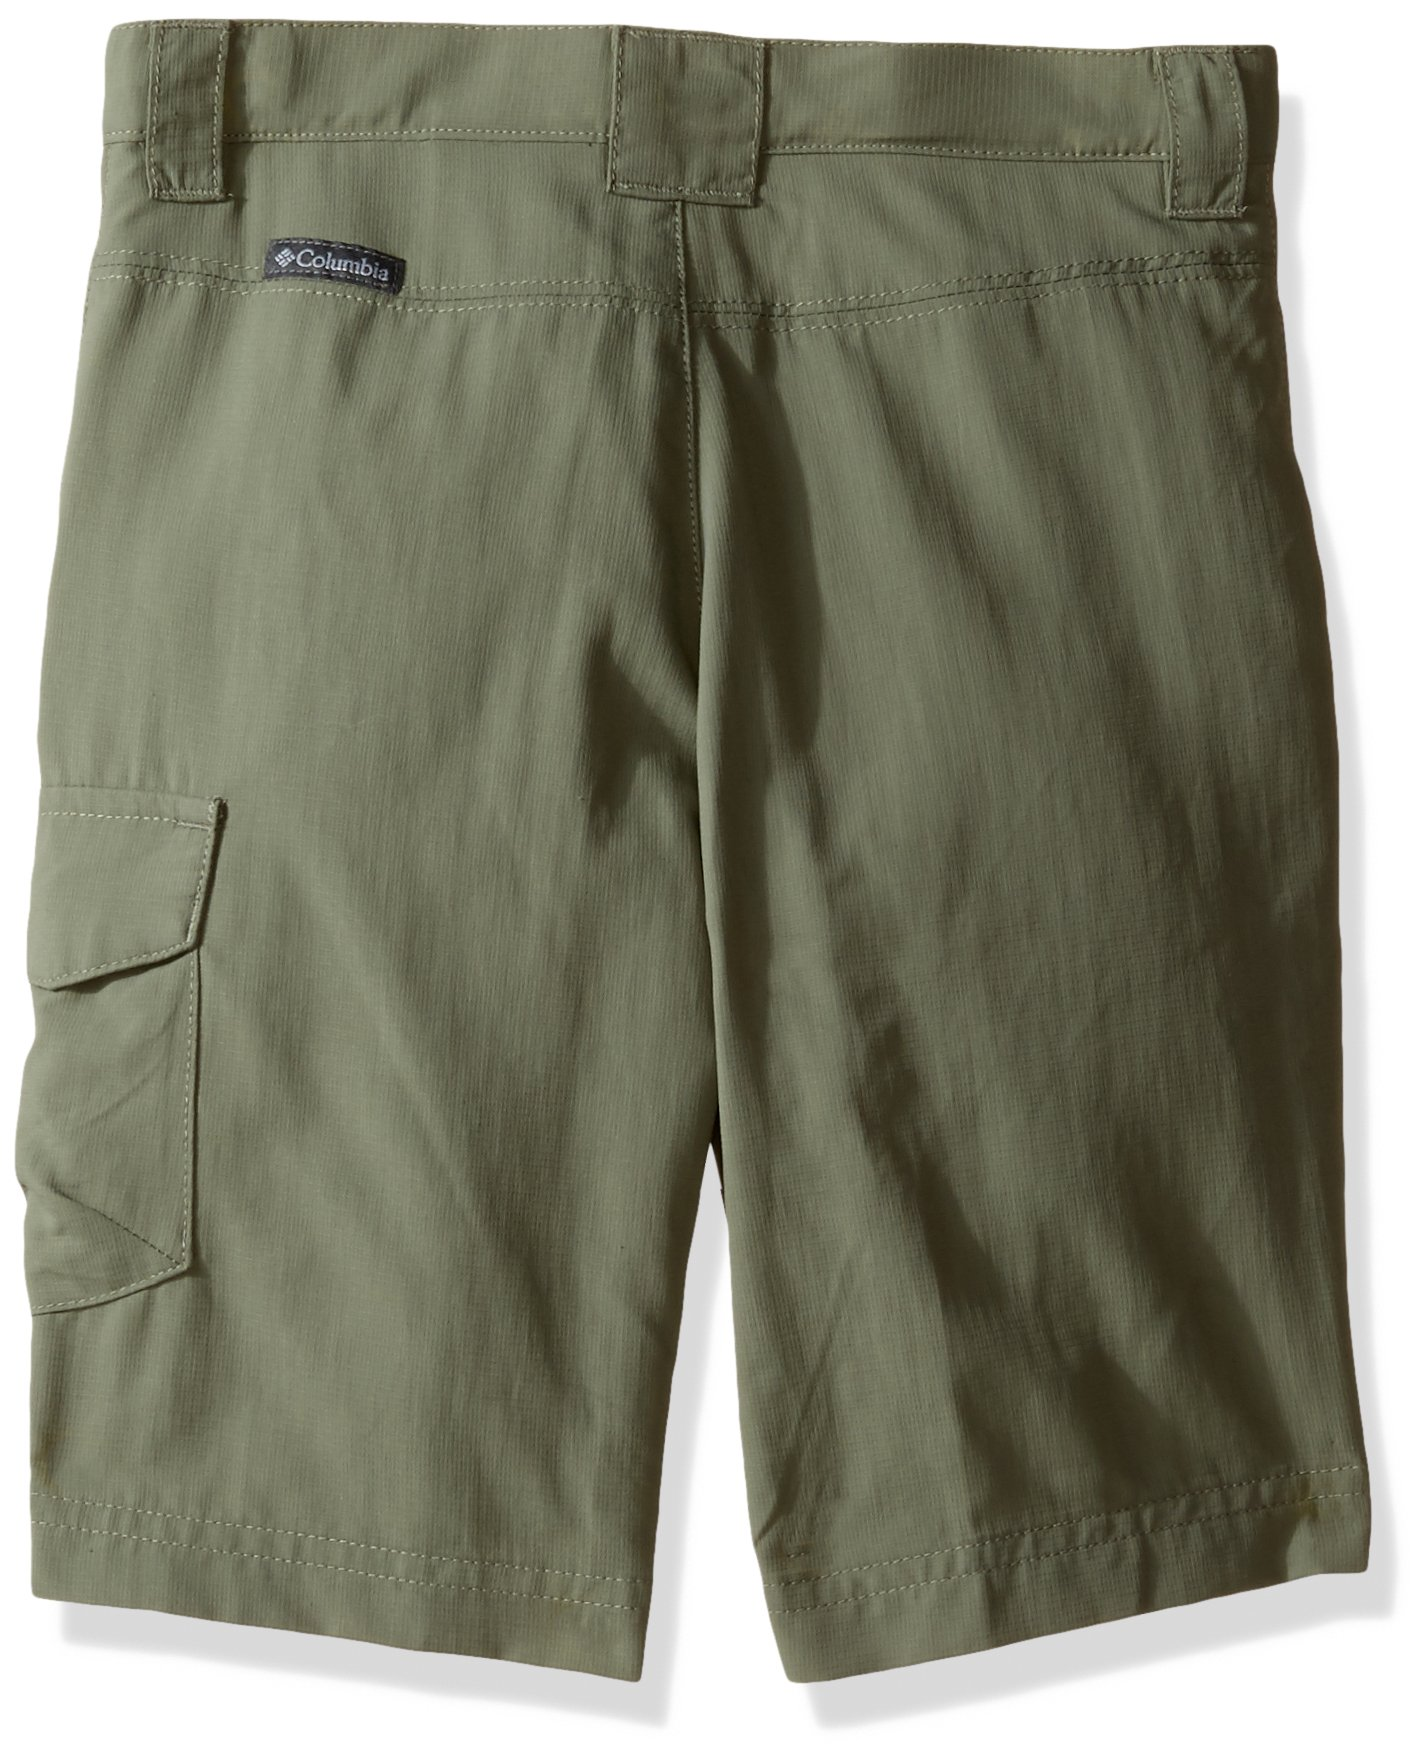 Columbia Youth Boys' Silver Ridge III Short, Breathable, UPF 30 Sun Protection by Columbia (Image #2)